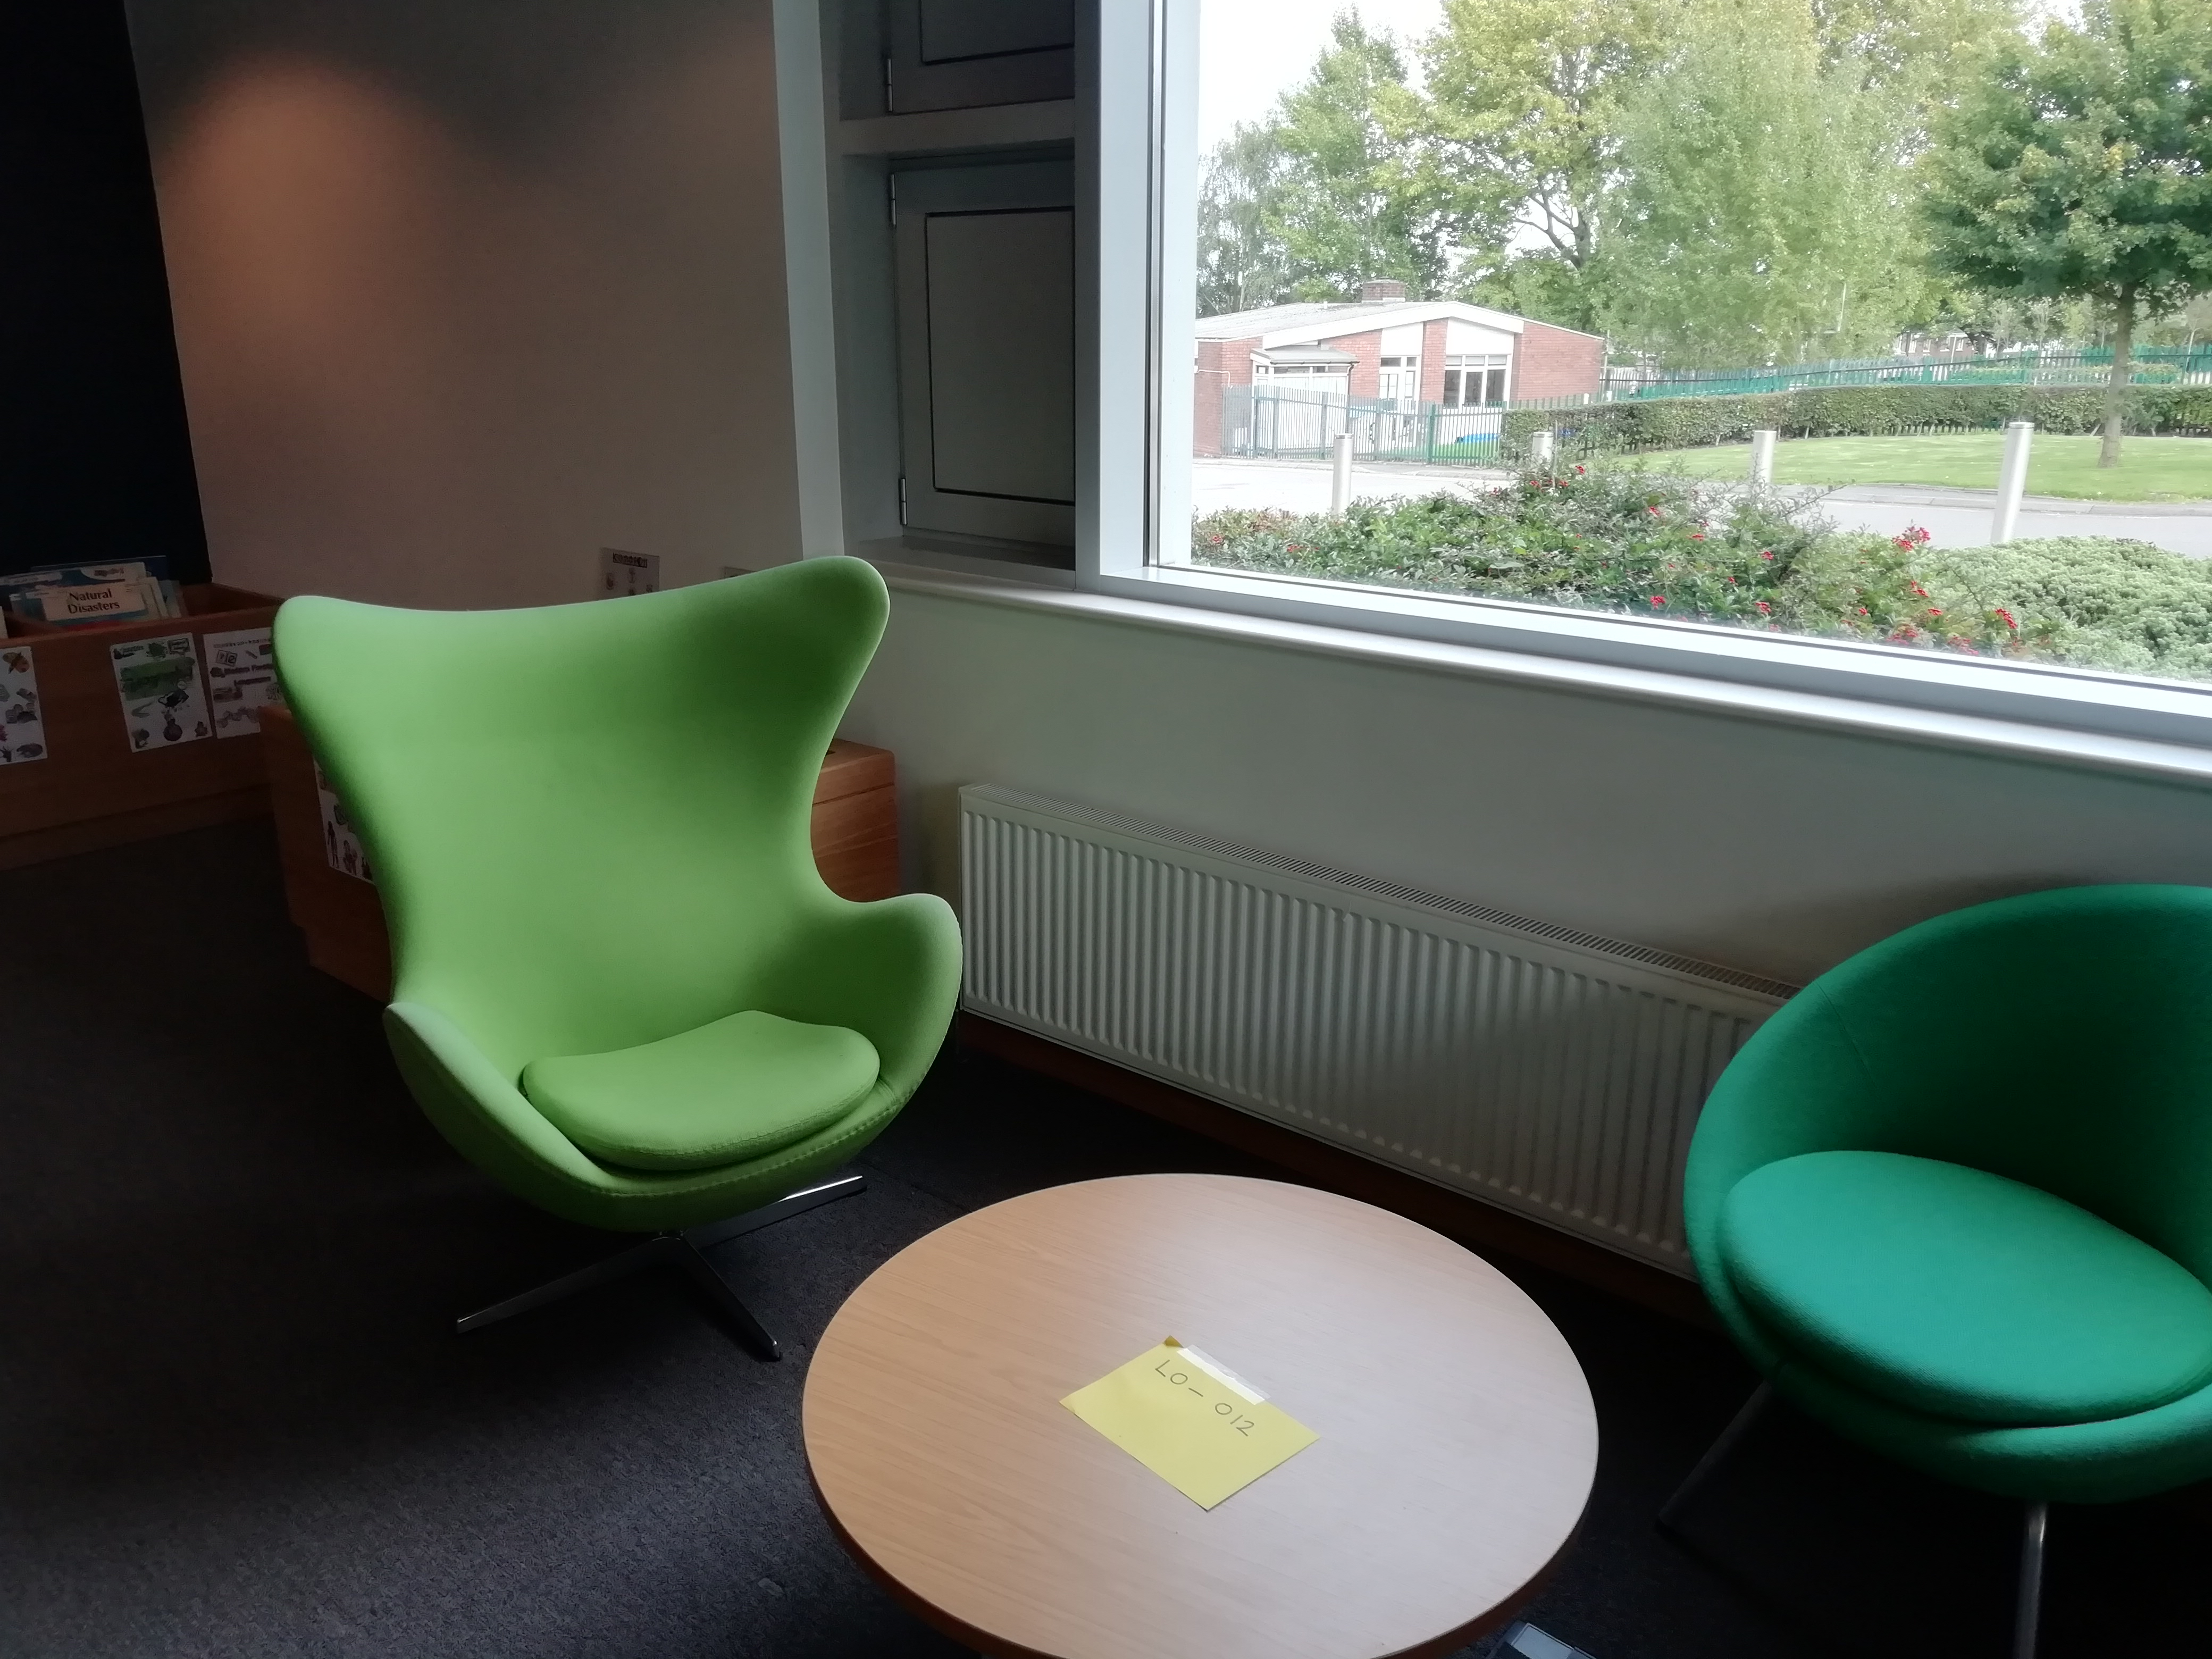 Example of study space with relaxed seating and no power socket